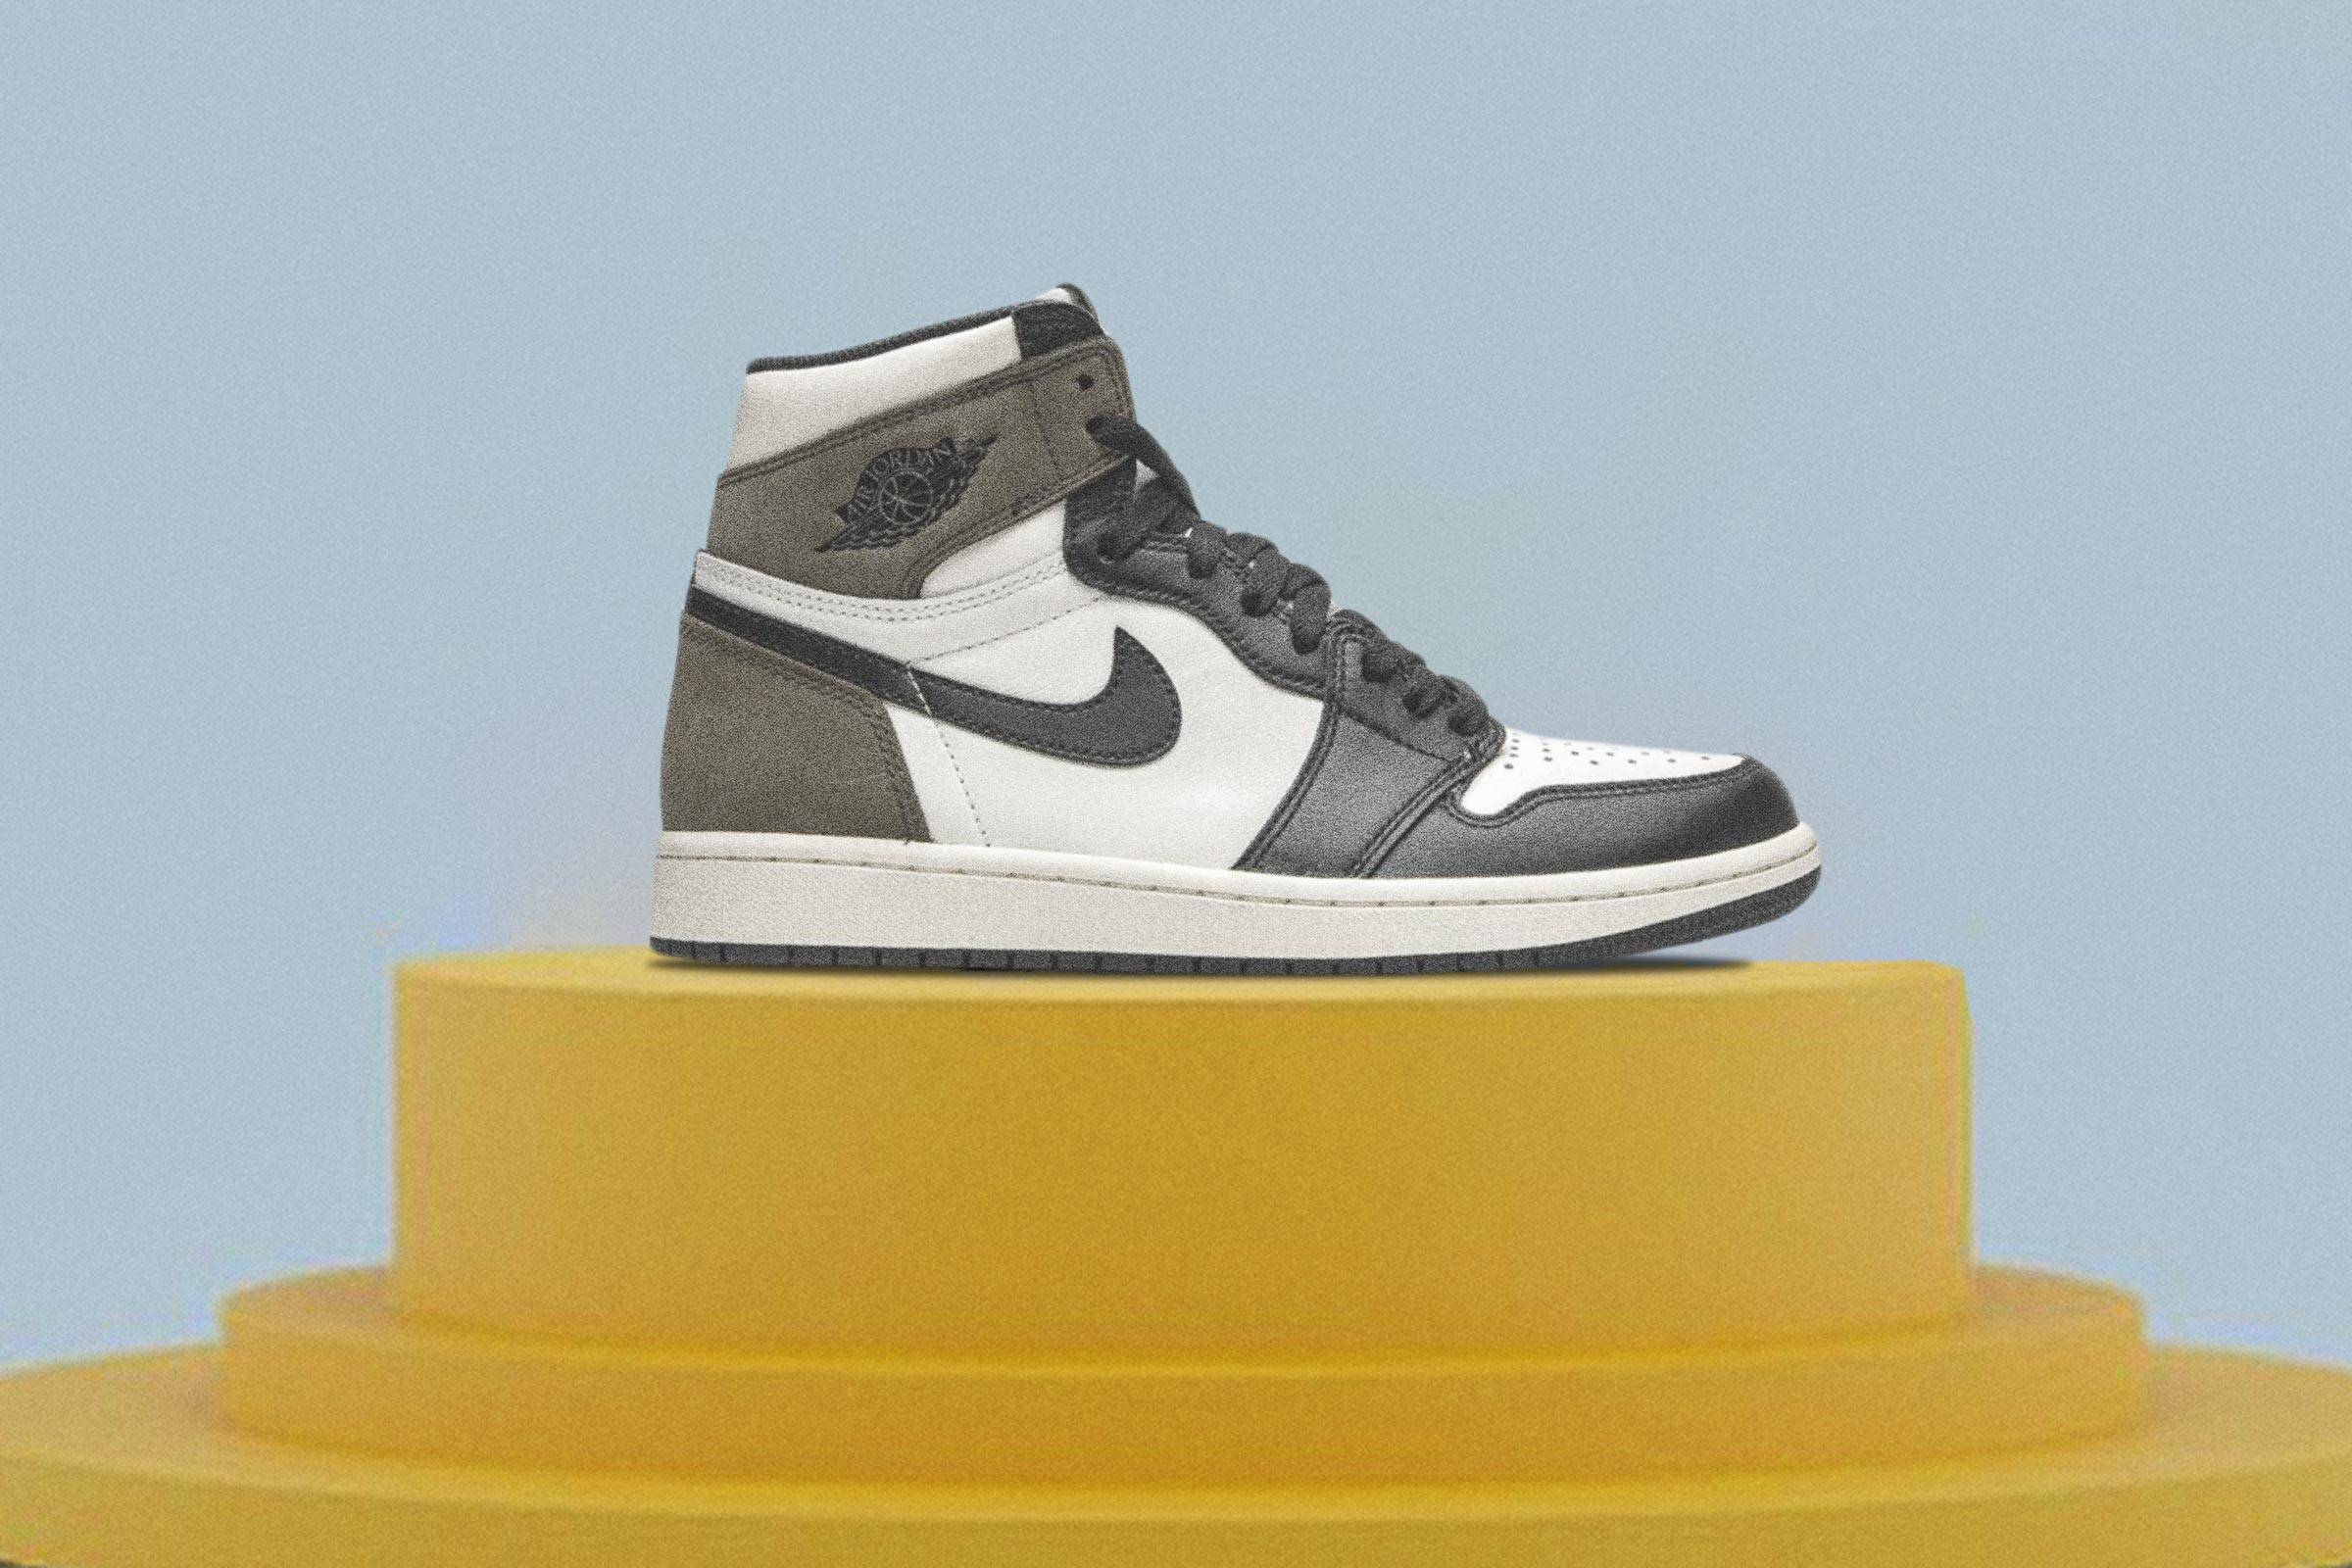 The 10 Best Selling Sneakers on Grailed: November 2020